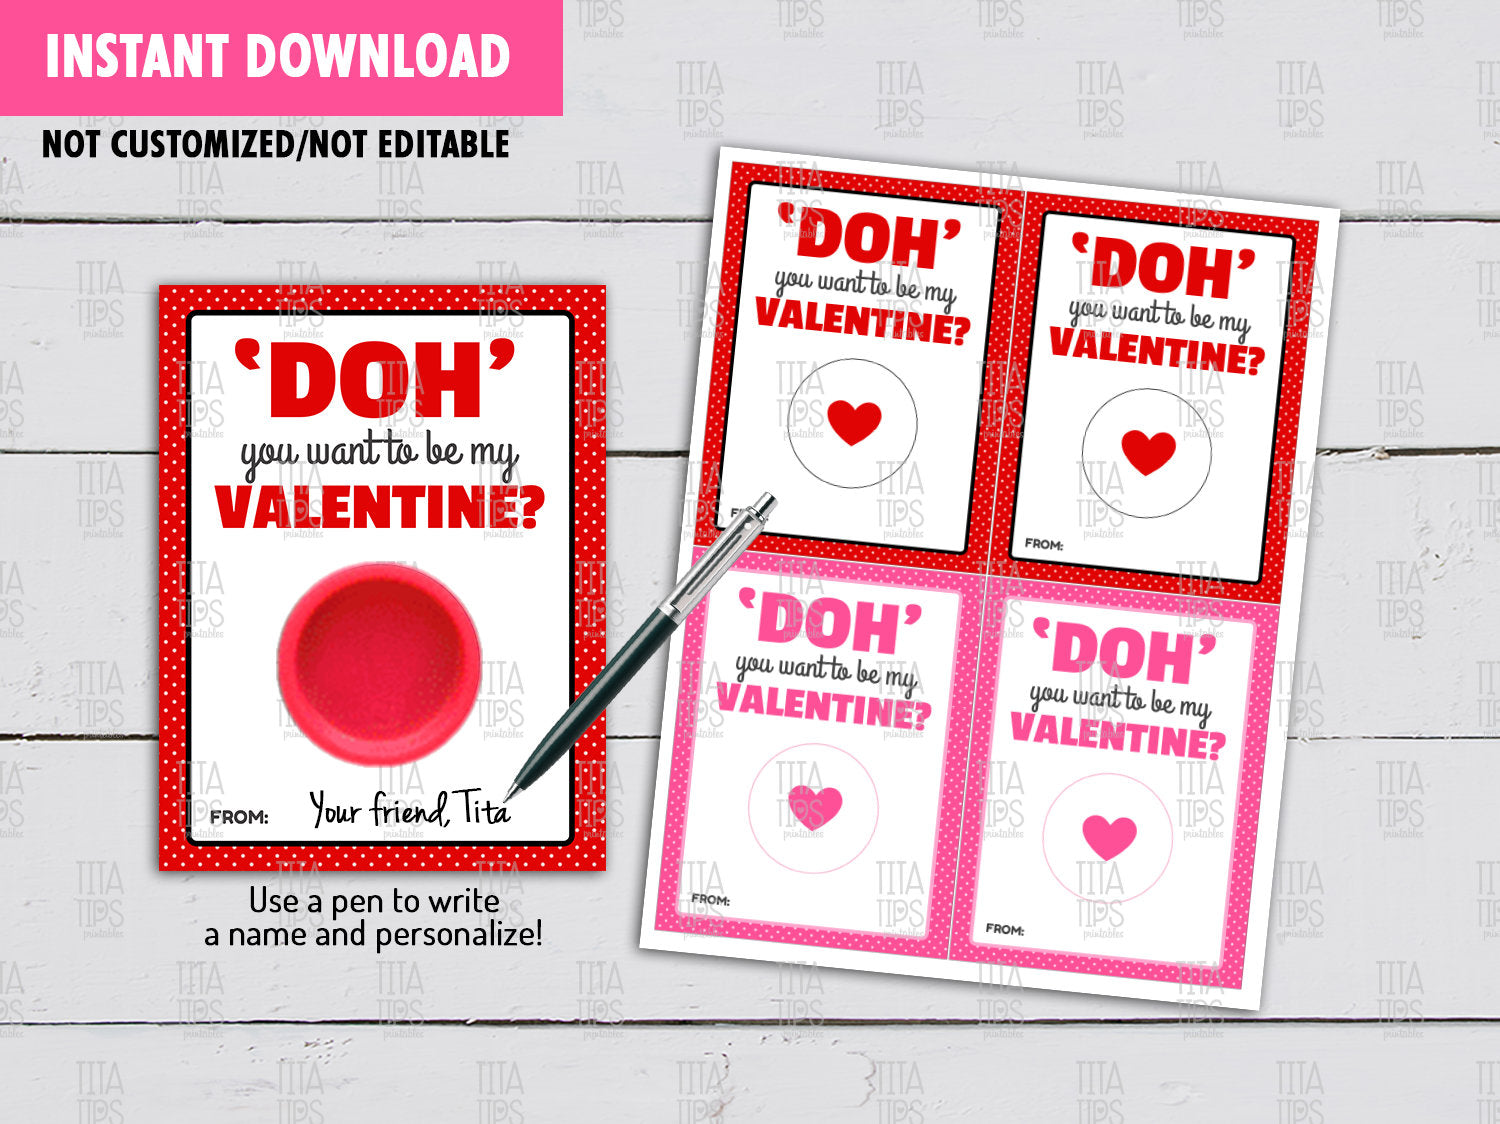 Valentine's Day Play Dough Card DIY Printable, DOH you want to be my Valentine Exchange Tag, Instant Download - TitaTipsPrintables